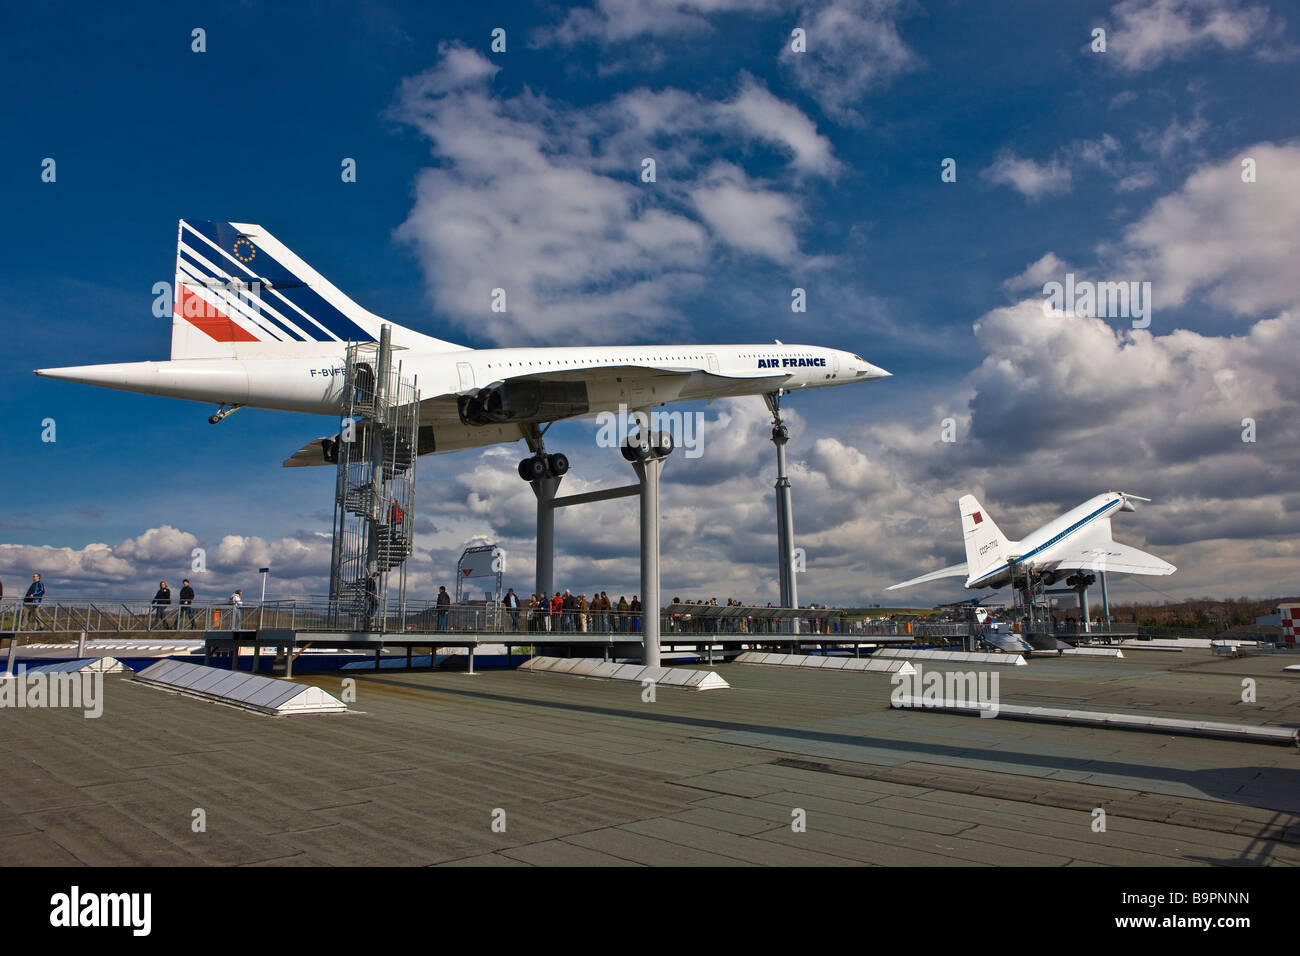 The Soviet and Anglo-French supersonic airliners, no longer in service, on display at a museum in Germany. - Stock Image